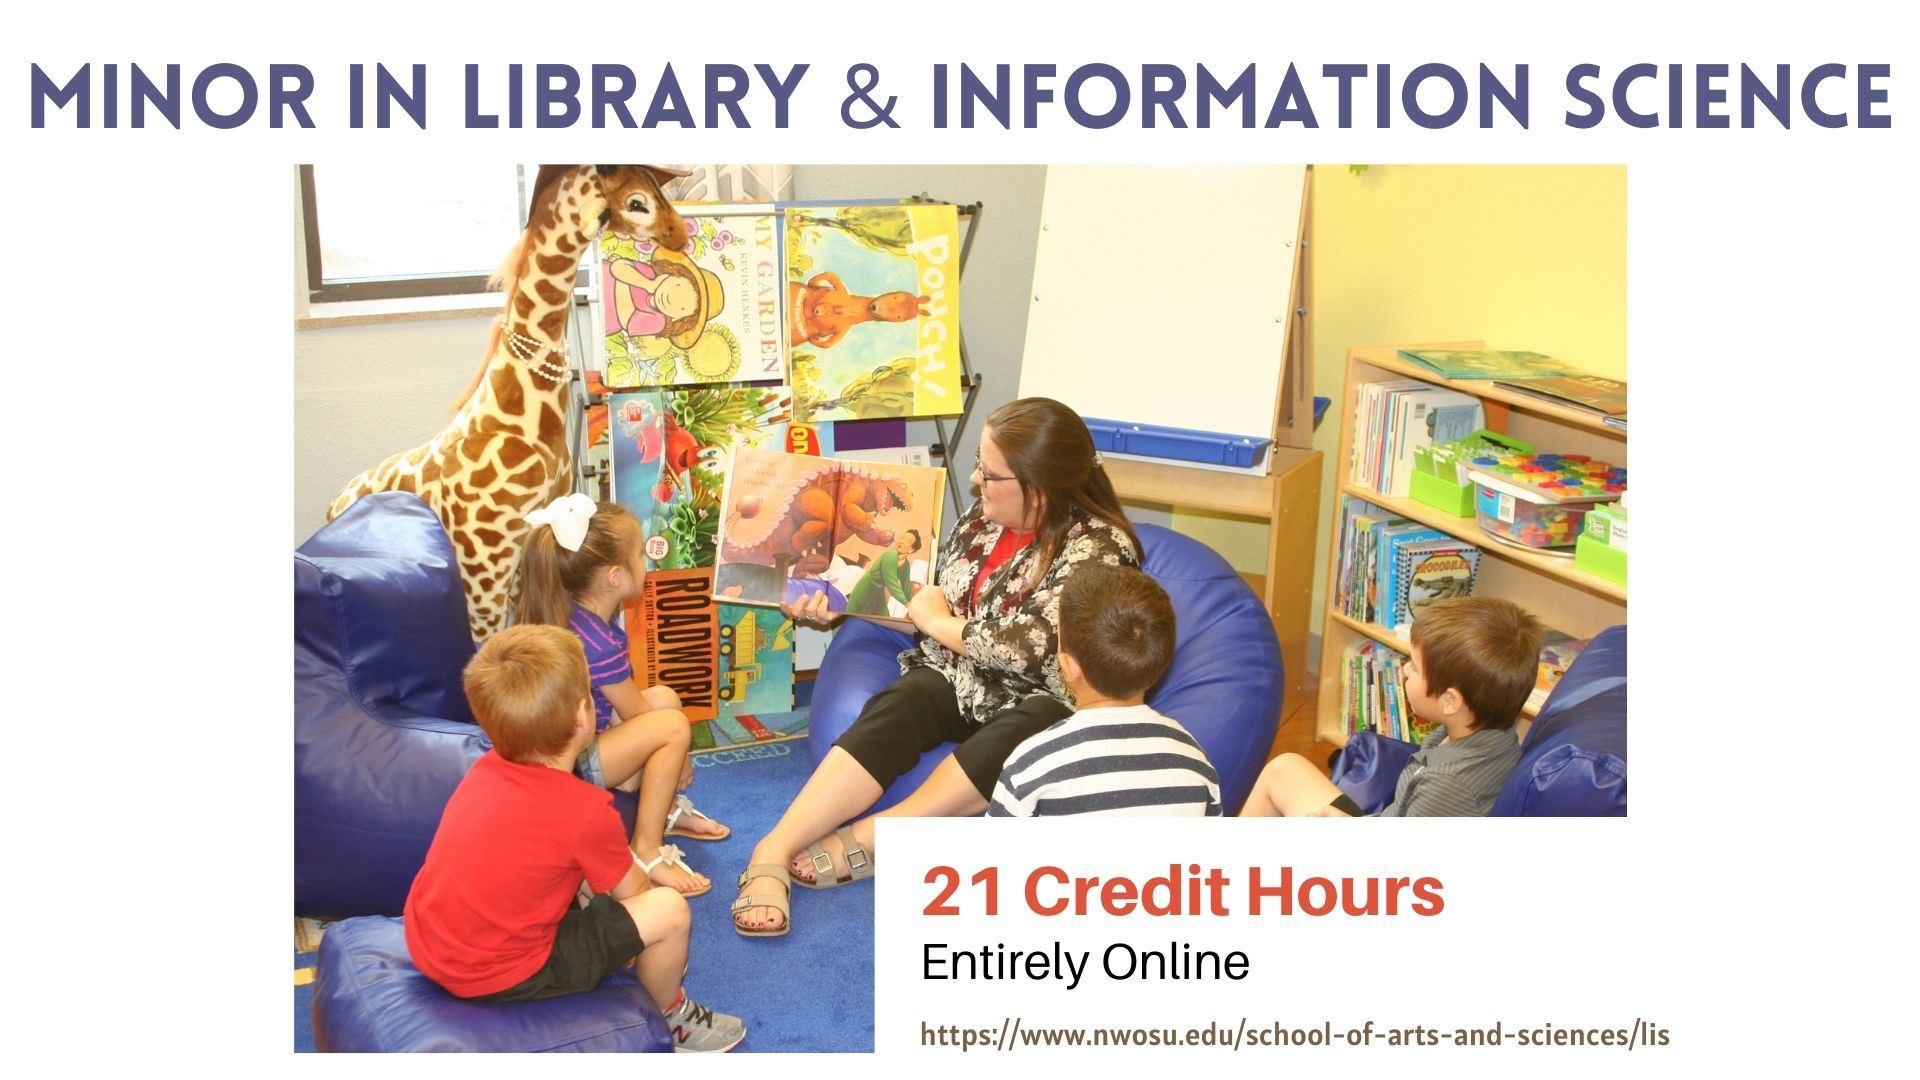 Minor in Library and Information Science: 21 credit hours, entirely online.